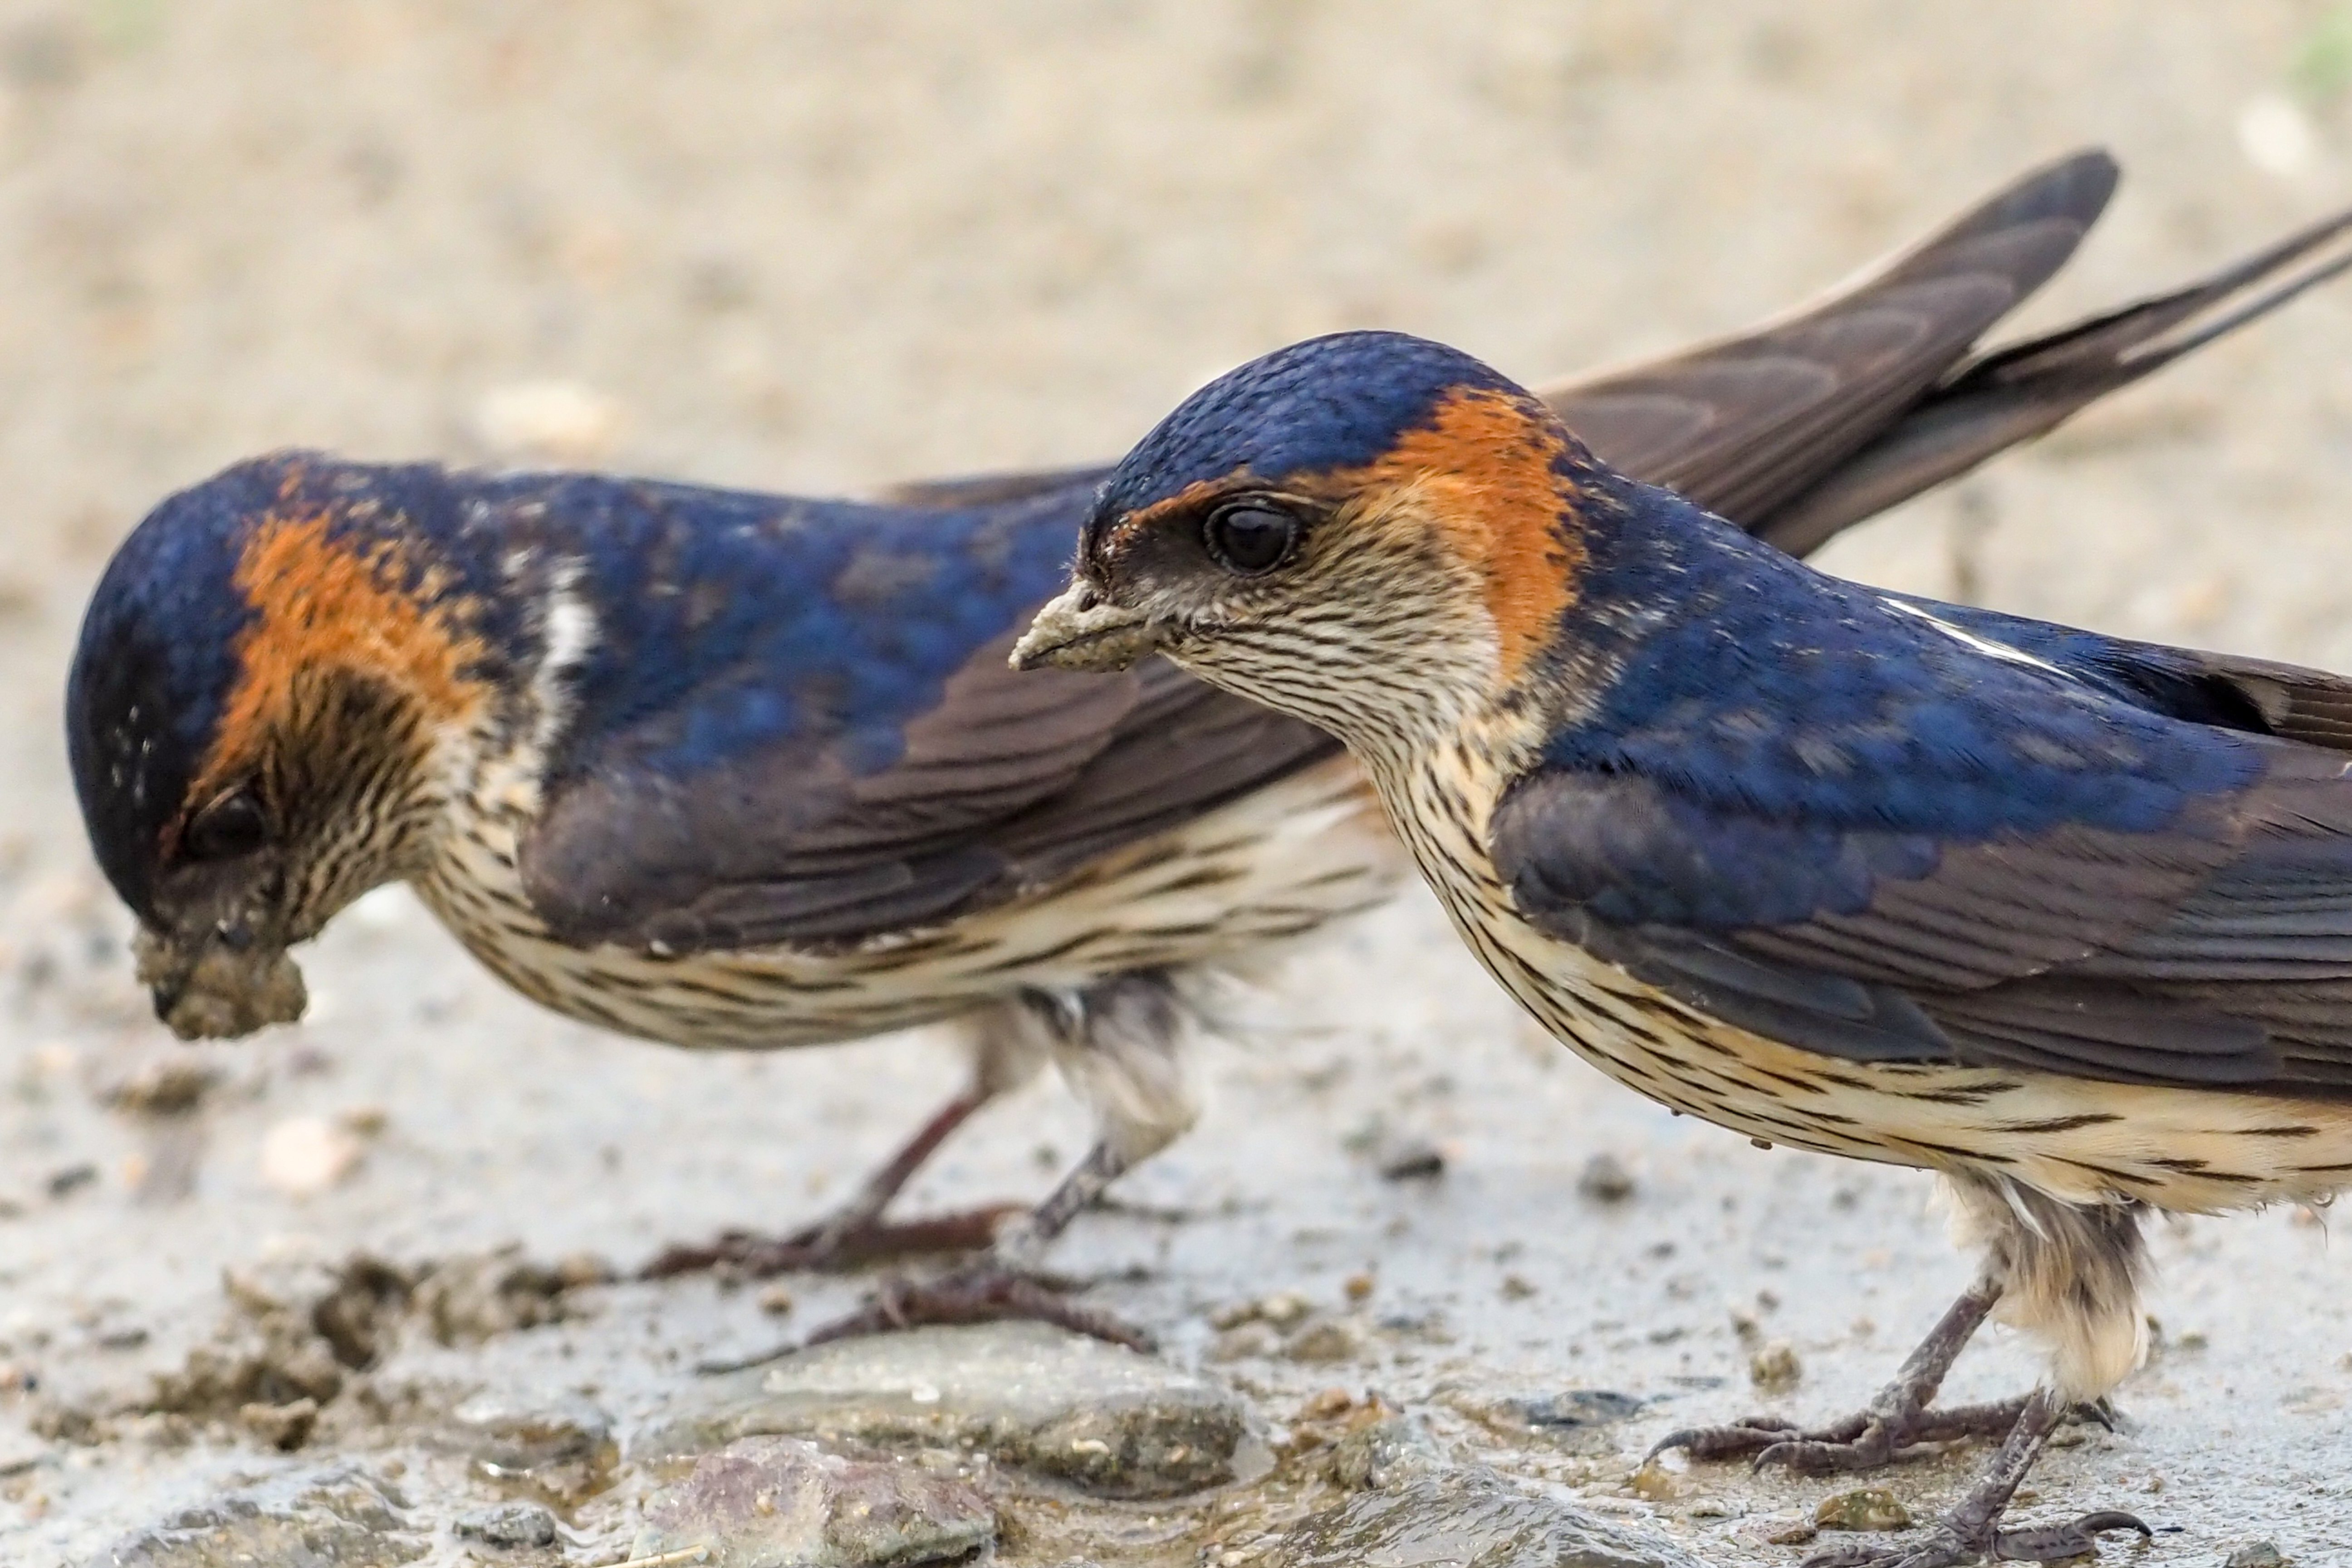 Red-Romped Swallow コシアカツバメ 19cm ツバメ科